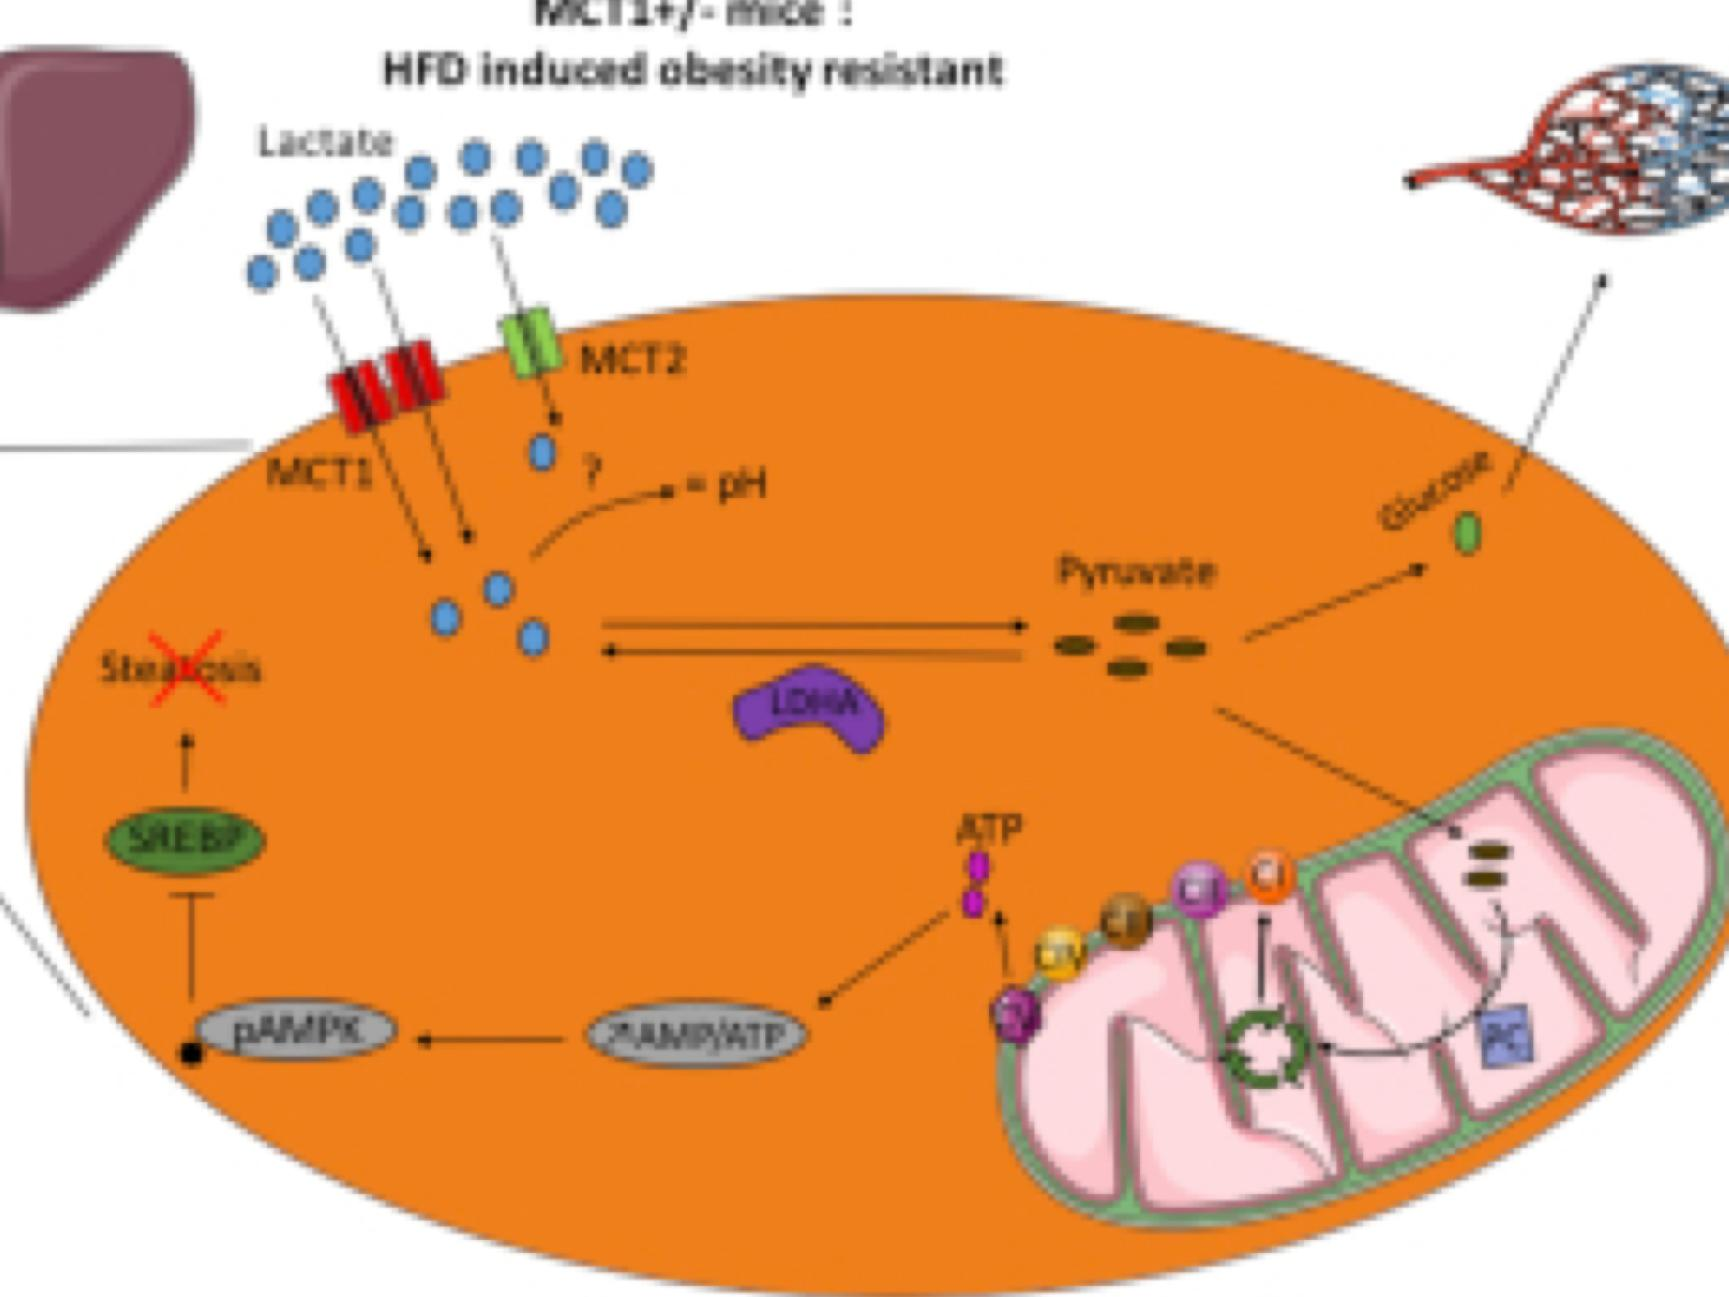 AMPK activation caused by reduced liver lactate metabolism protects against hepatic steatosis in MCT1 haploinsufficient mice